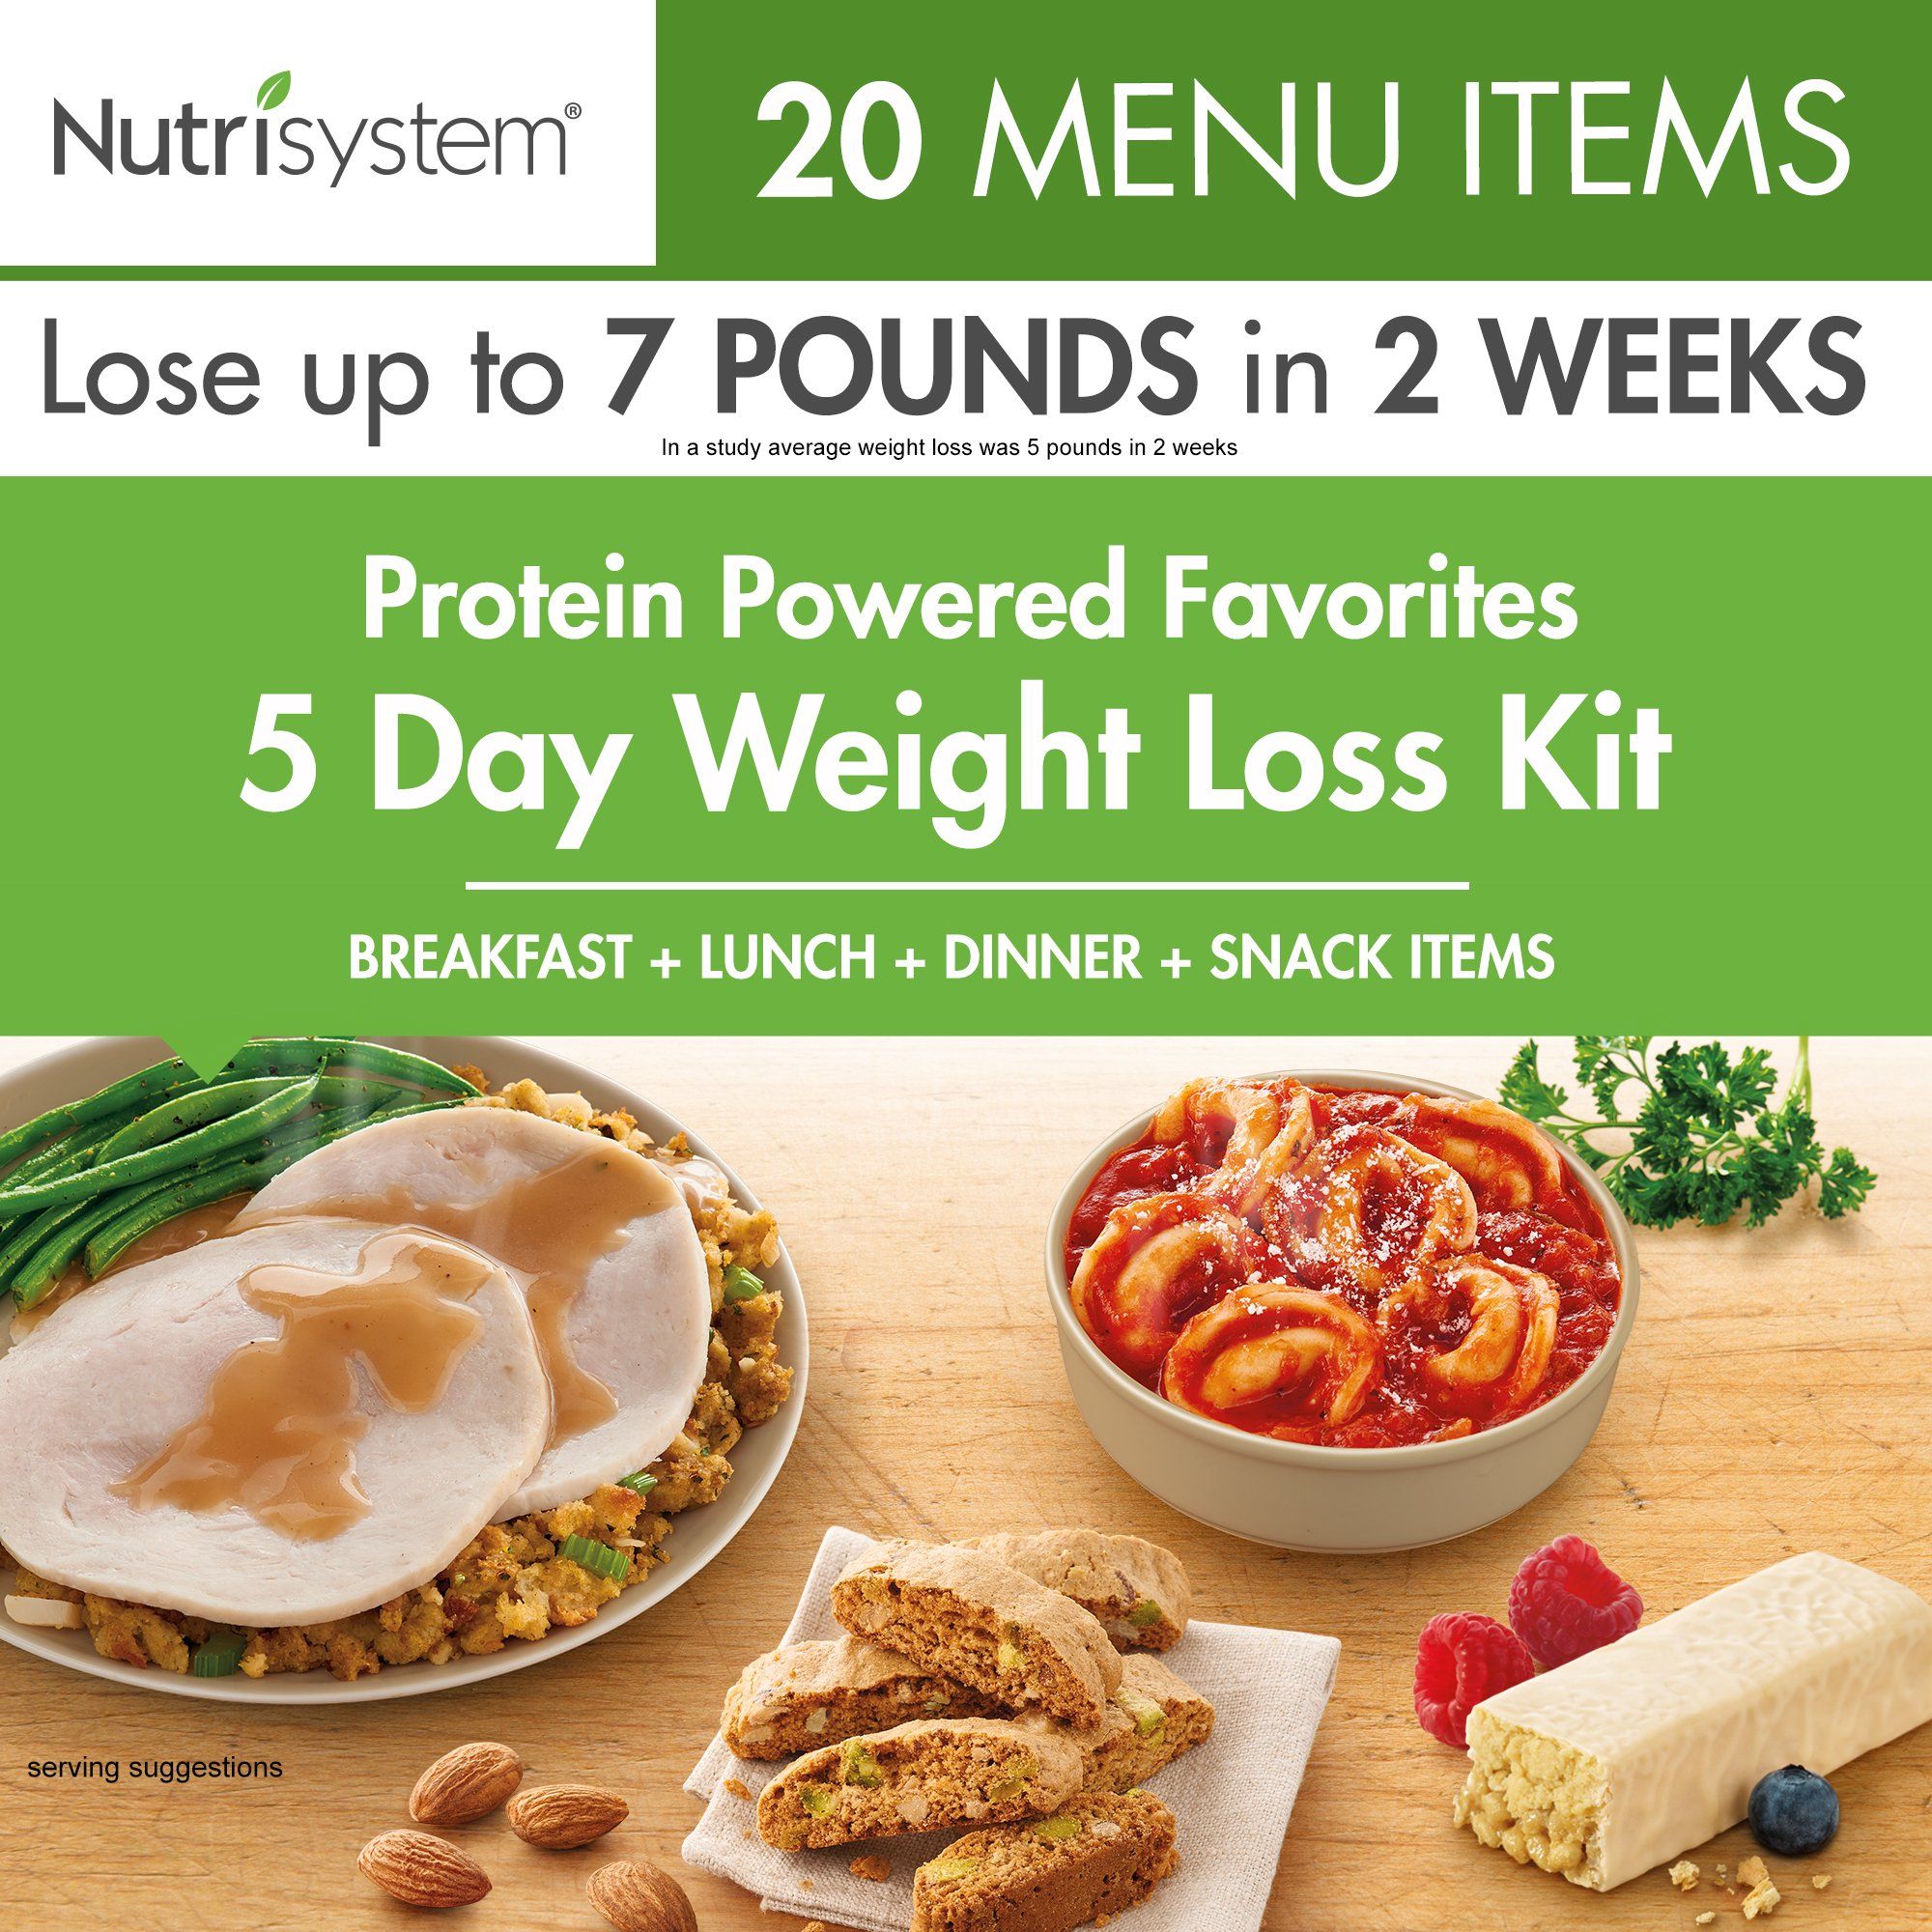 Nutrisystem® Protein-Powered Favorites 5-Day Weight Loss kit by Nutrisystem